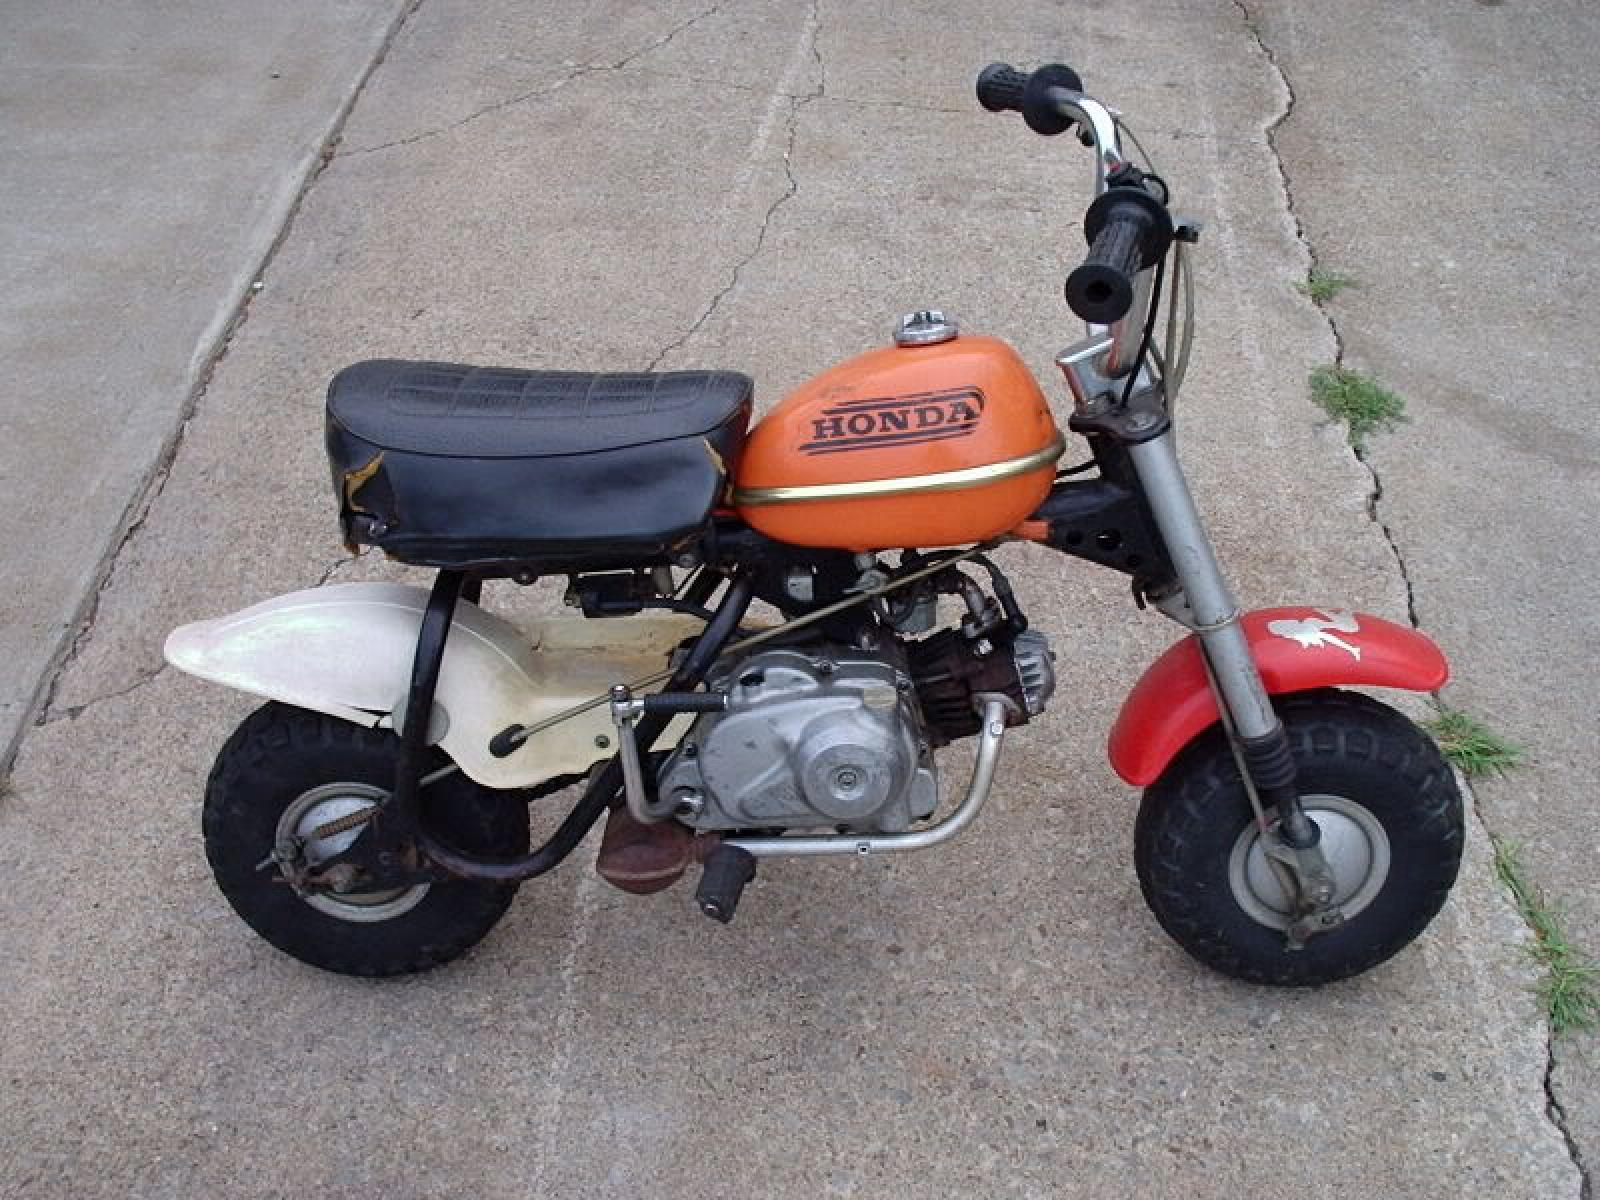 Mini Moto Honda 50 Ide Dimage De 1970 Trail Download Image 1600 X 1200